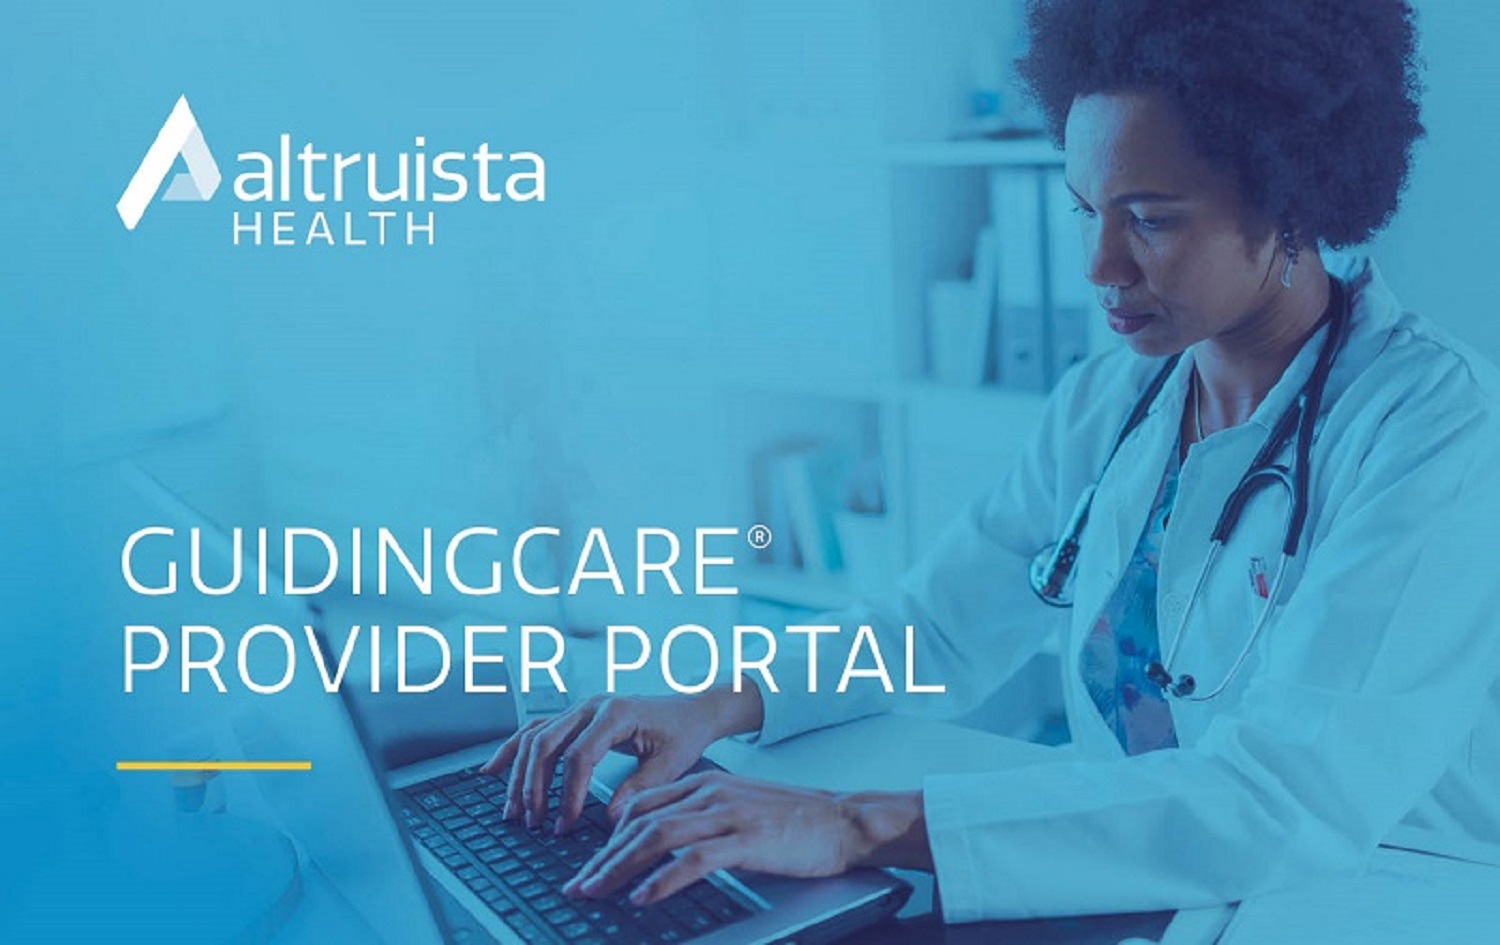 1500-945-altruista-health-introduces-provider-portal-june-2020